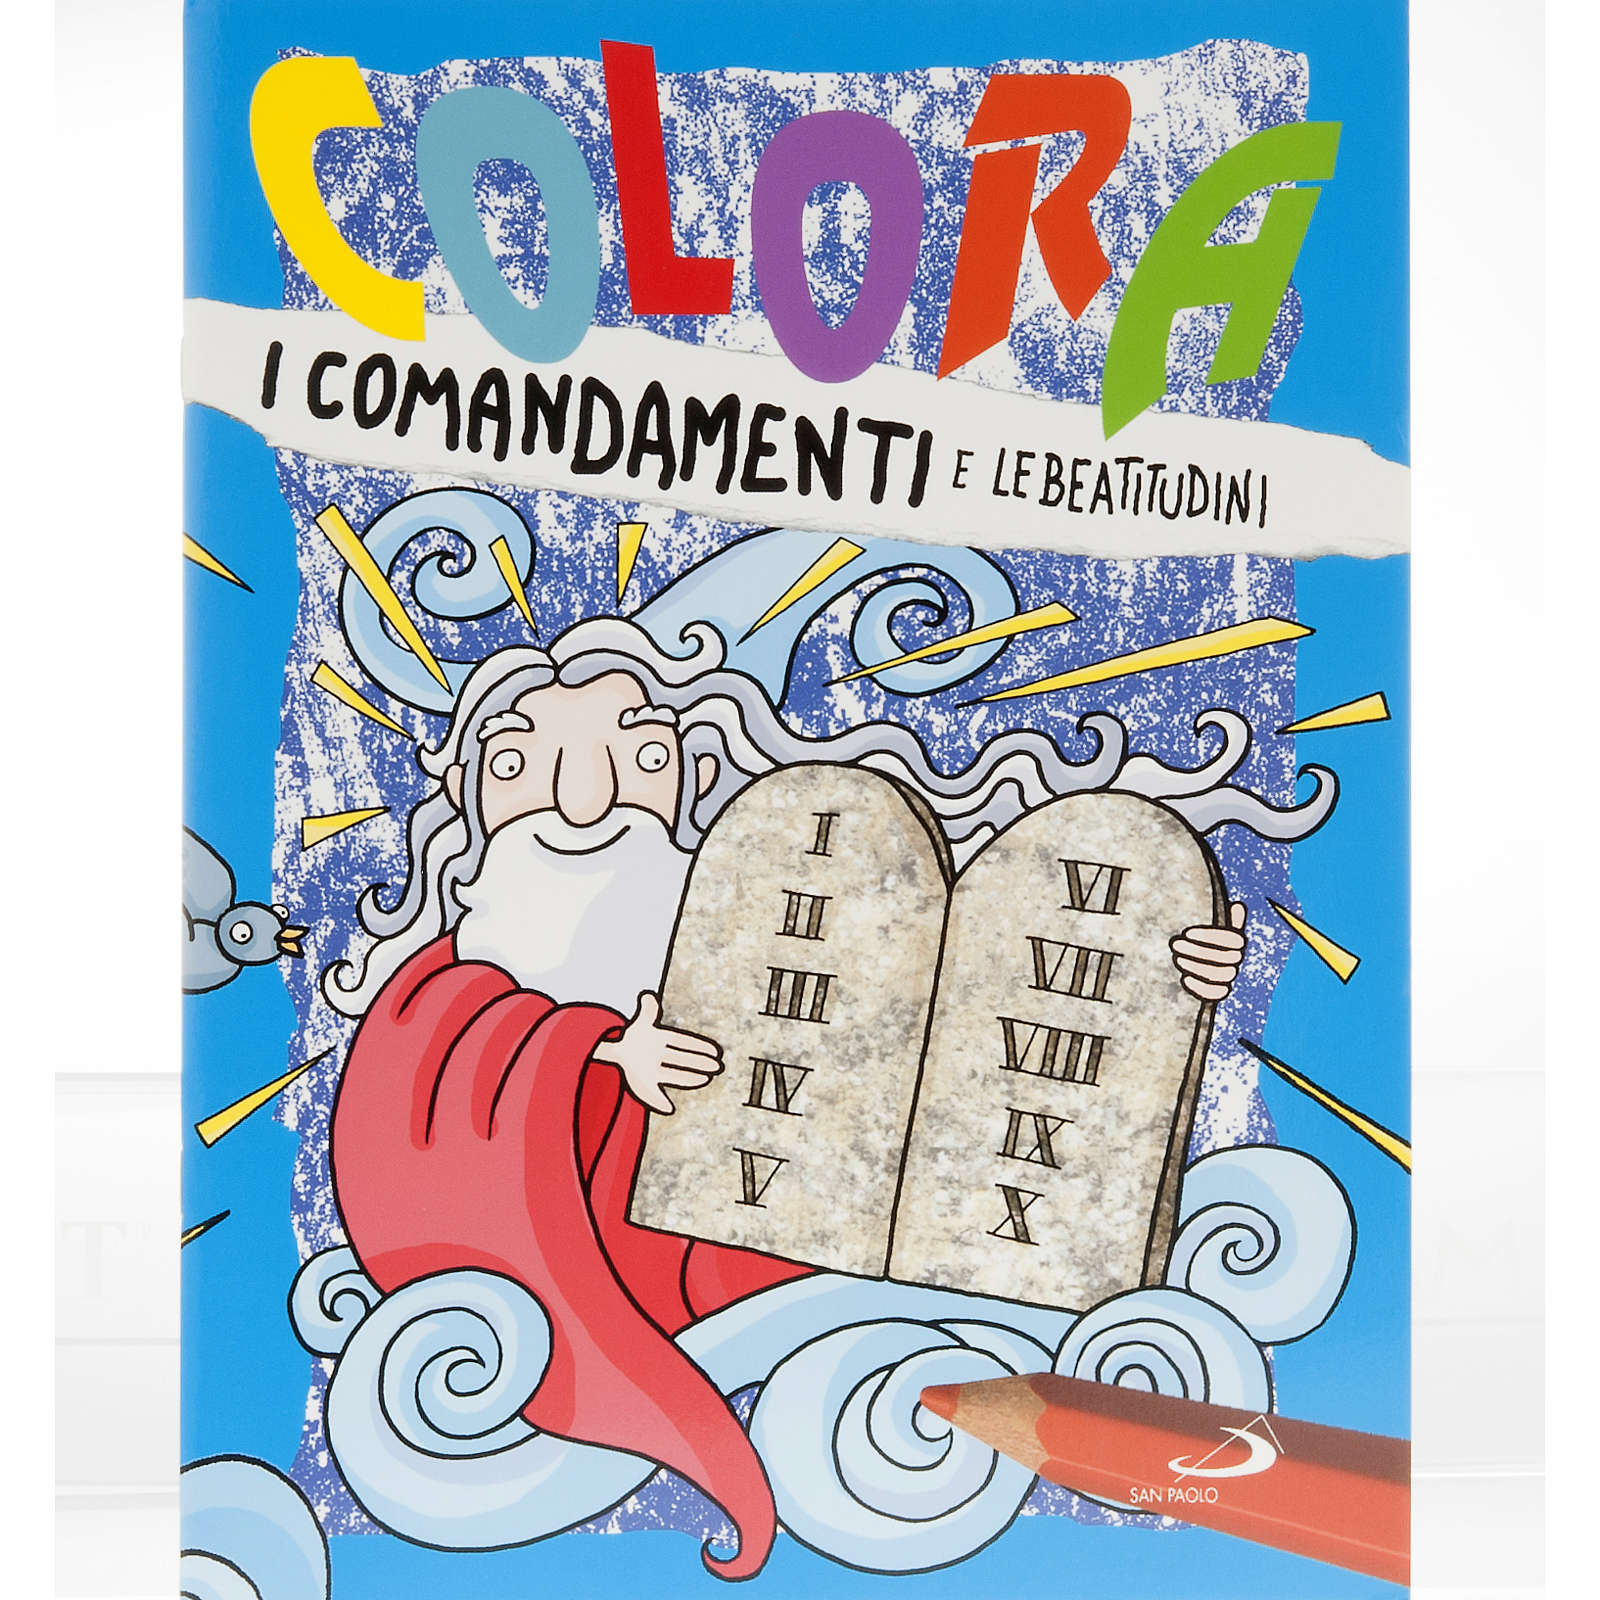 Colour the commandments and the Beatitudes 4